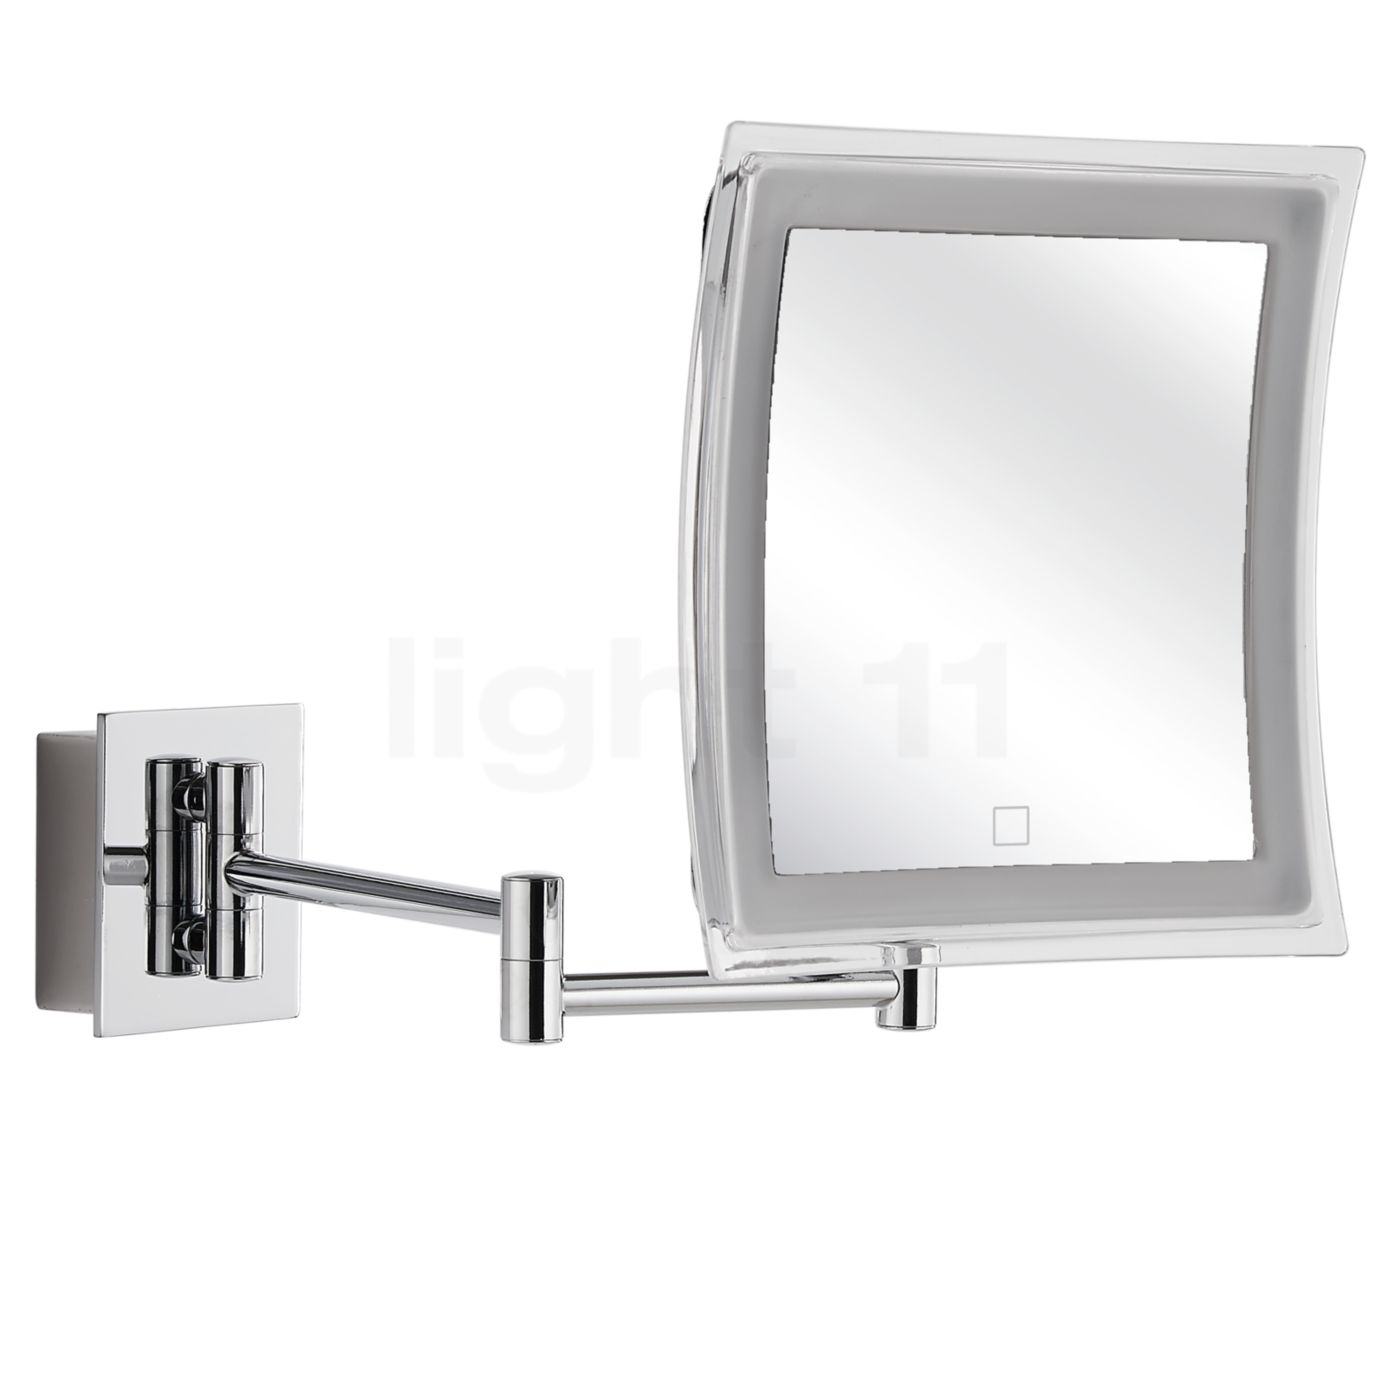 Decor Walther Decor Walther Bs 84 Touch Wall Mounted Cosmetic Mirror Led